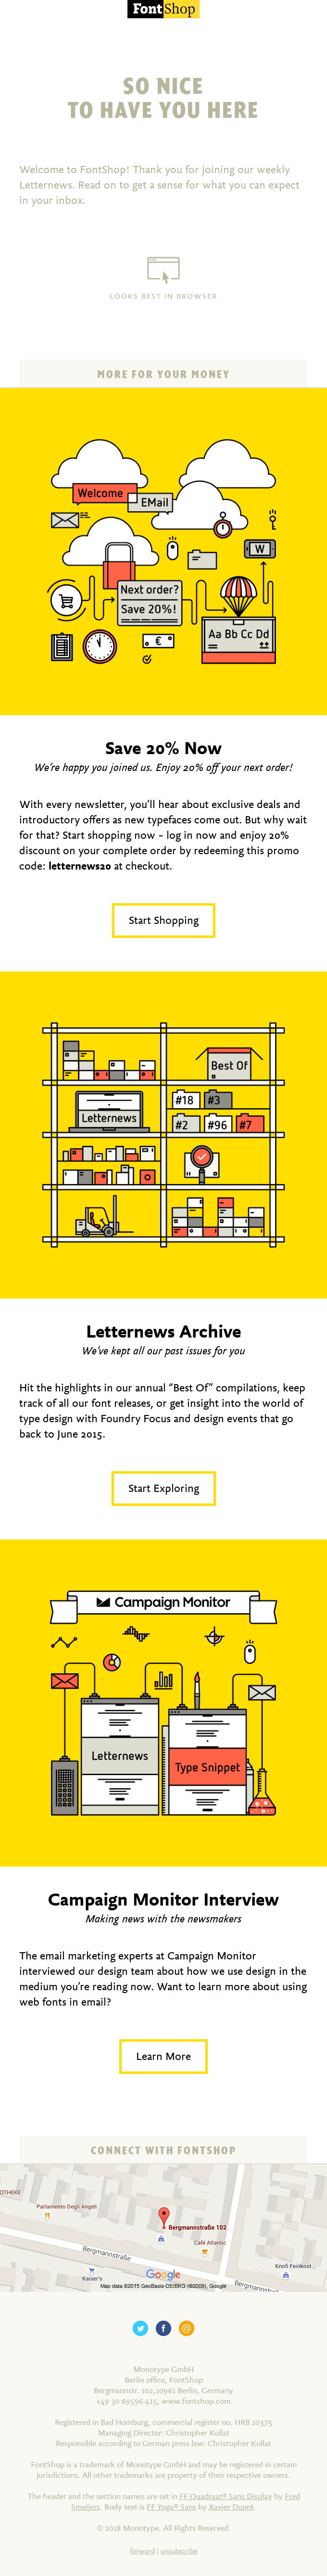 Thank you for subscribing to our Letternews